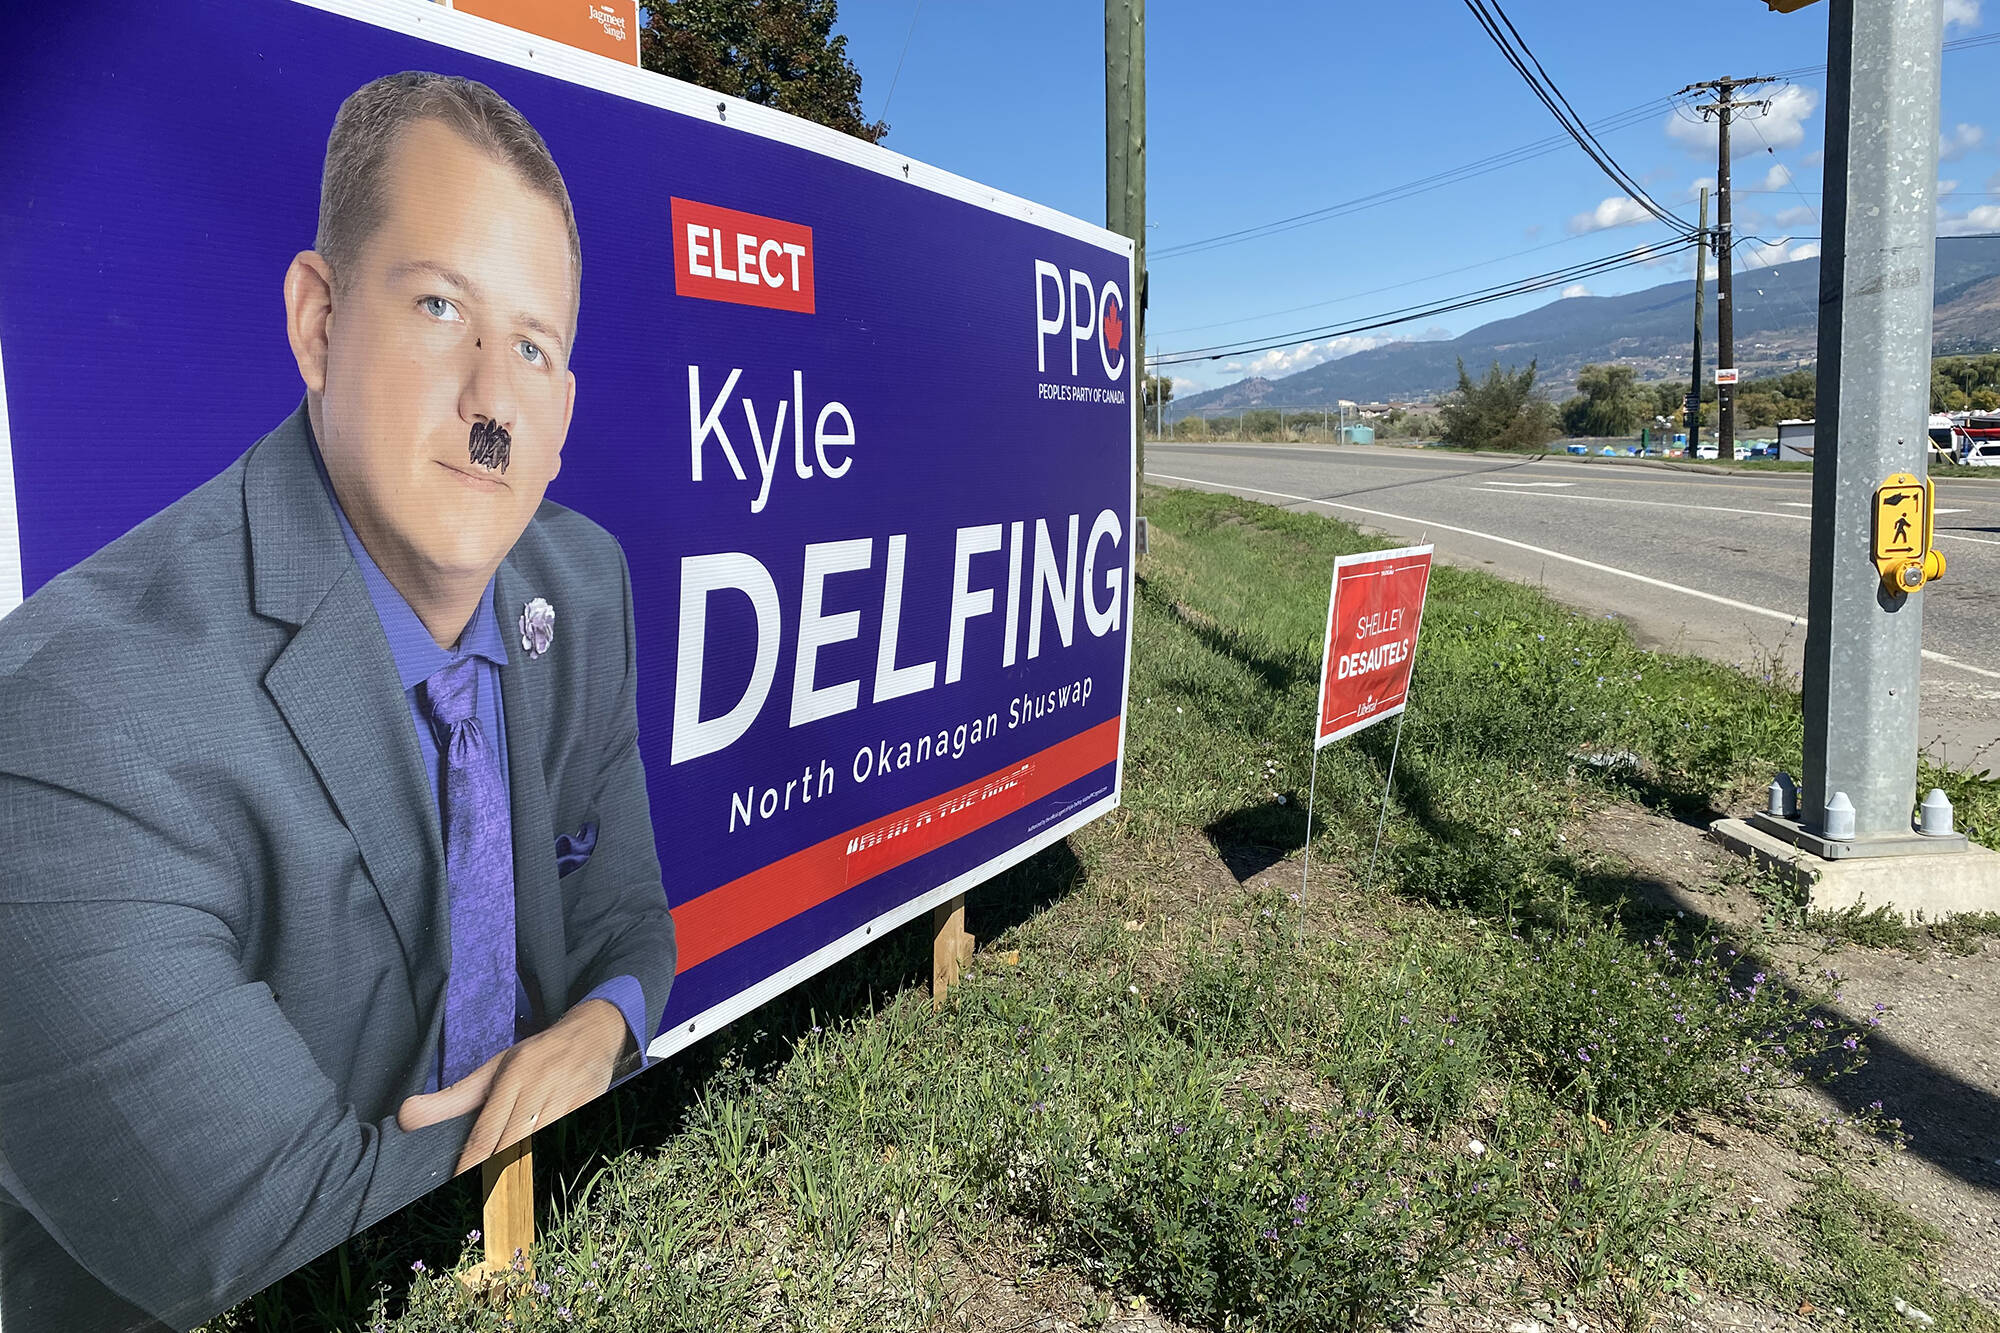 Several of North Okanagan-Shuswap PPC candidate Kyle Delfing's campaign signs have been targeted by vandals spraying 'fascist' or drawing toothbrush moustaches on. (Caitlin Clow - Vernon Morning Star)